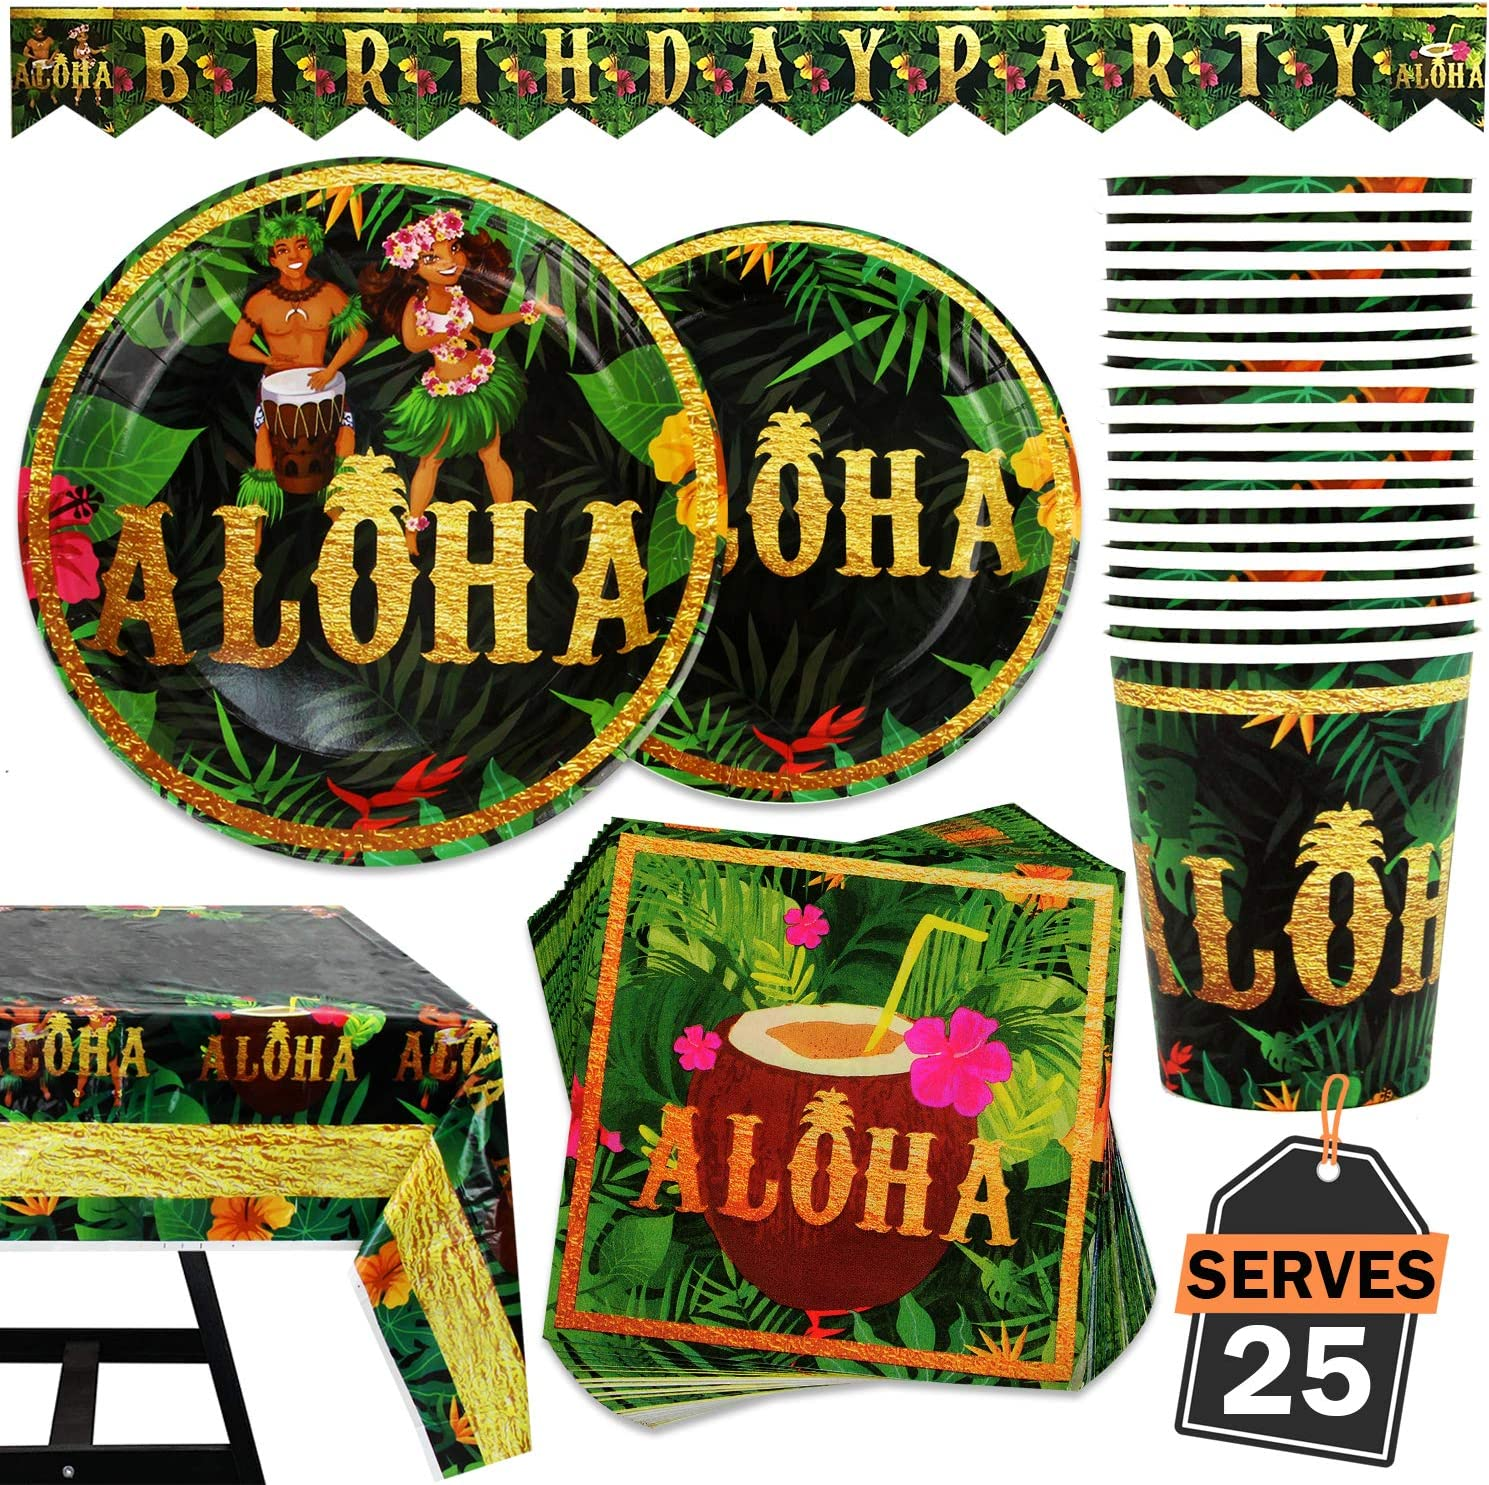 102 Piece Hawaiian, Luau, Aloha Party Supplies Satz Including Banner, Plates, Cups, Napkins, und Tablecloth, Serves 25